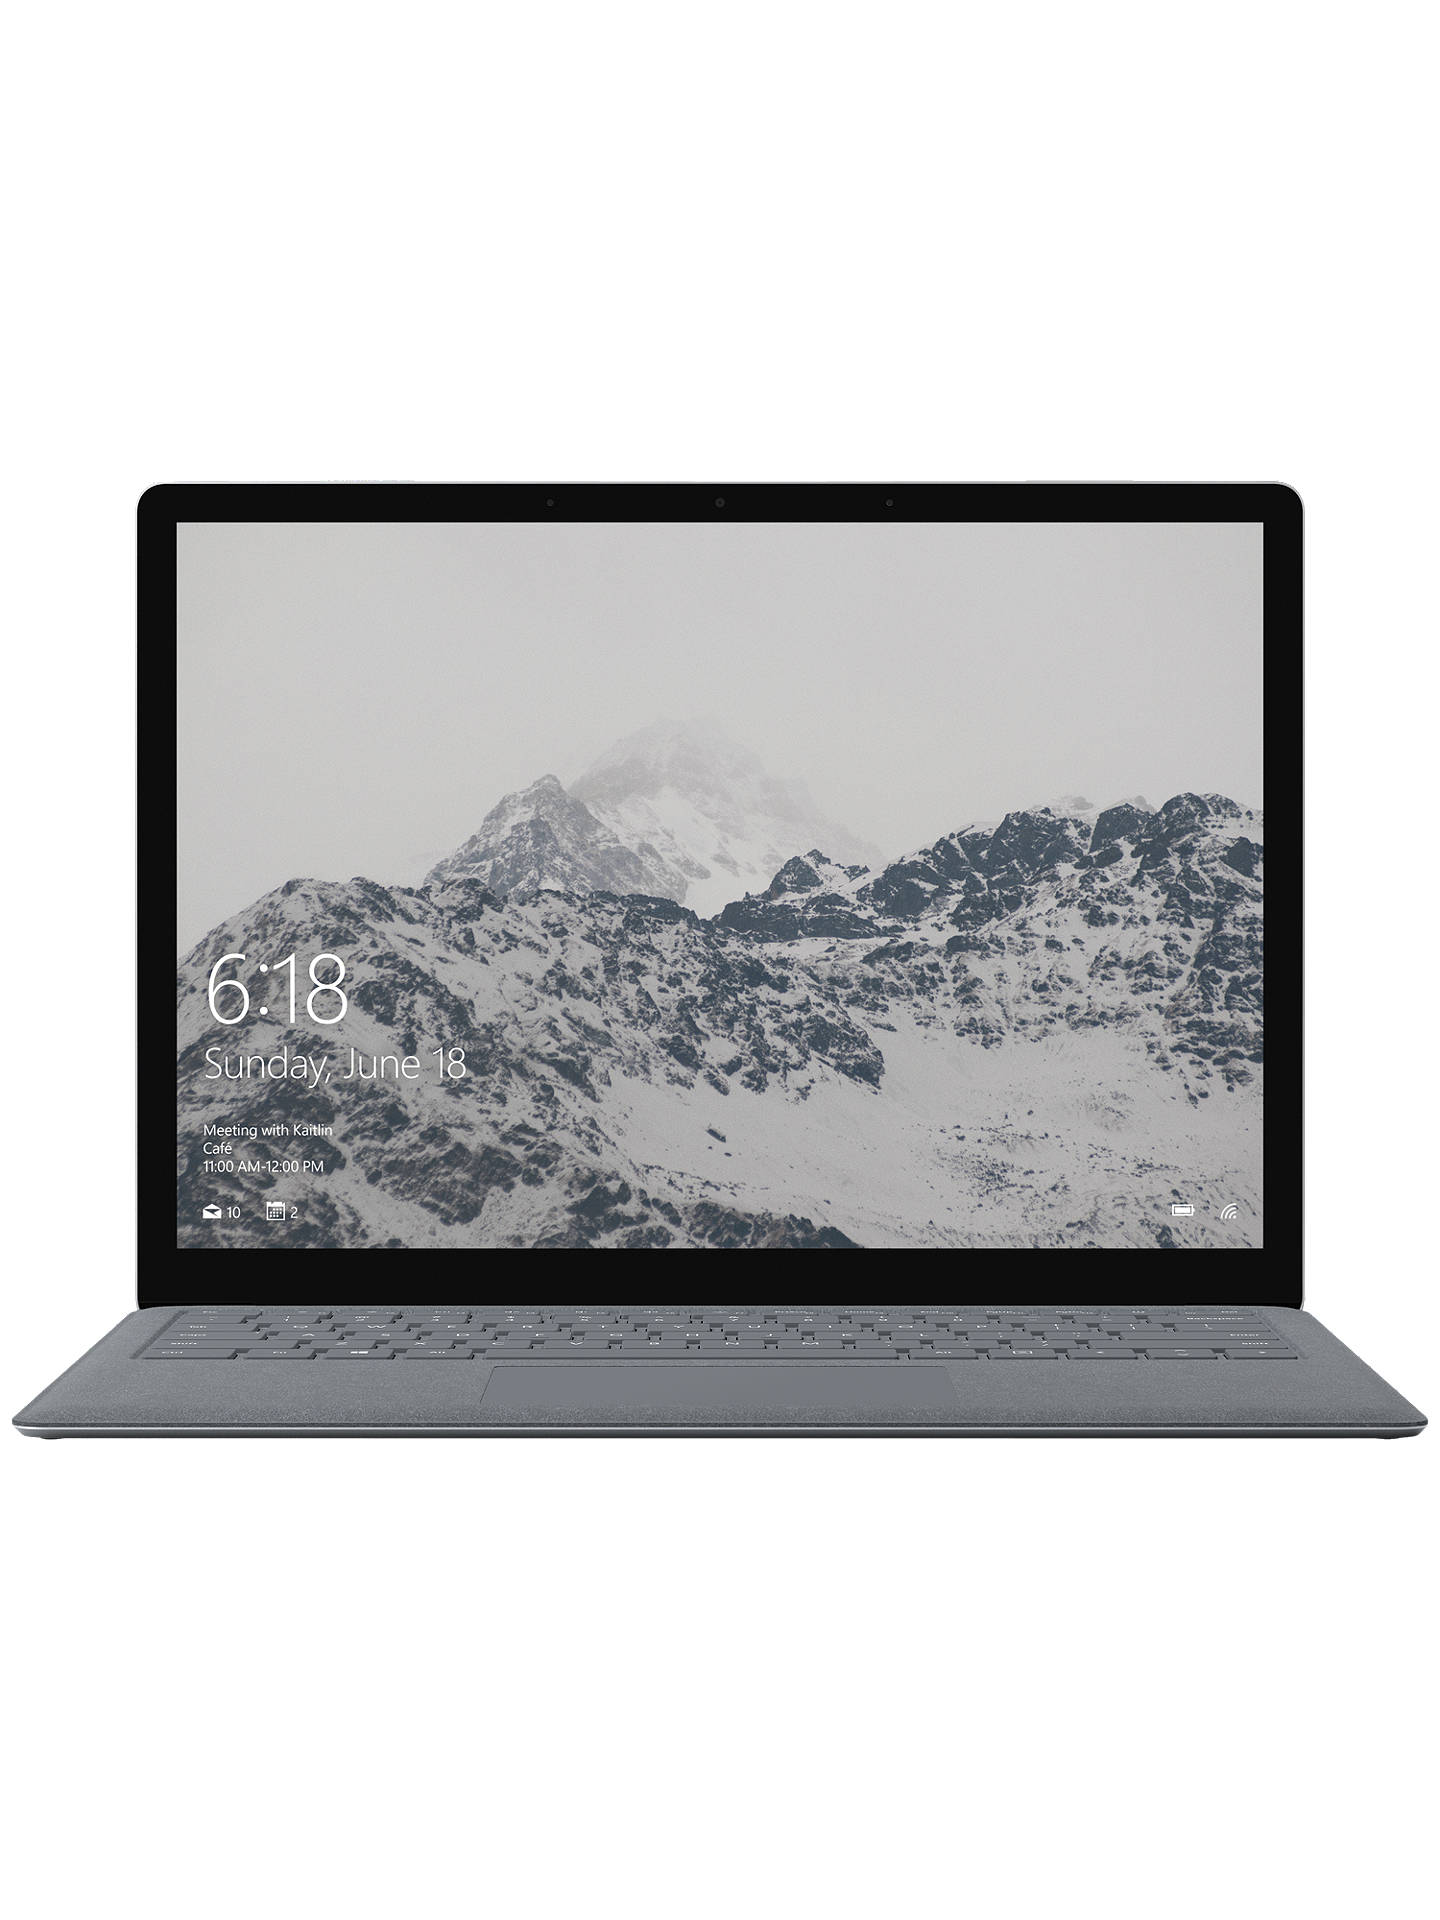 where is the serial number on a surface laptop